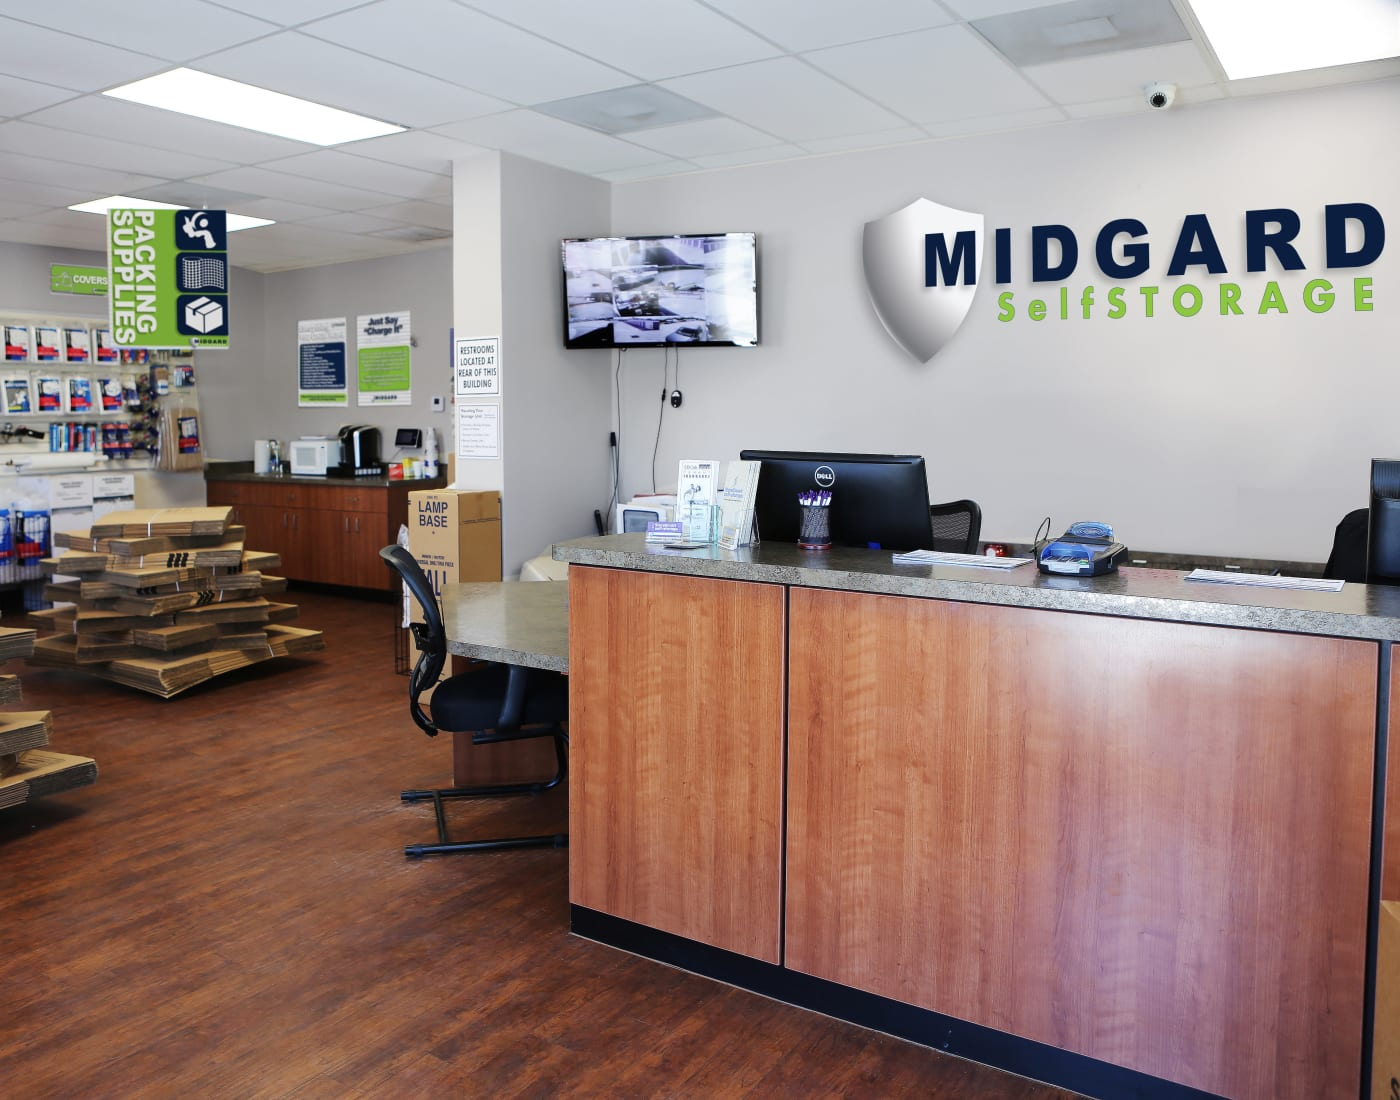 Packing and moving supplies for sale at Midgard Self Storage in Wilmington, North Carolina